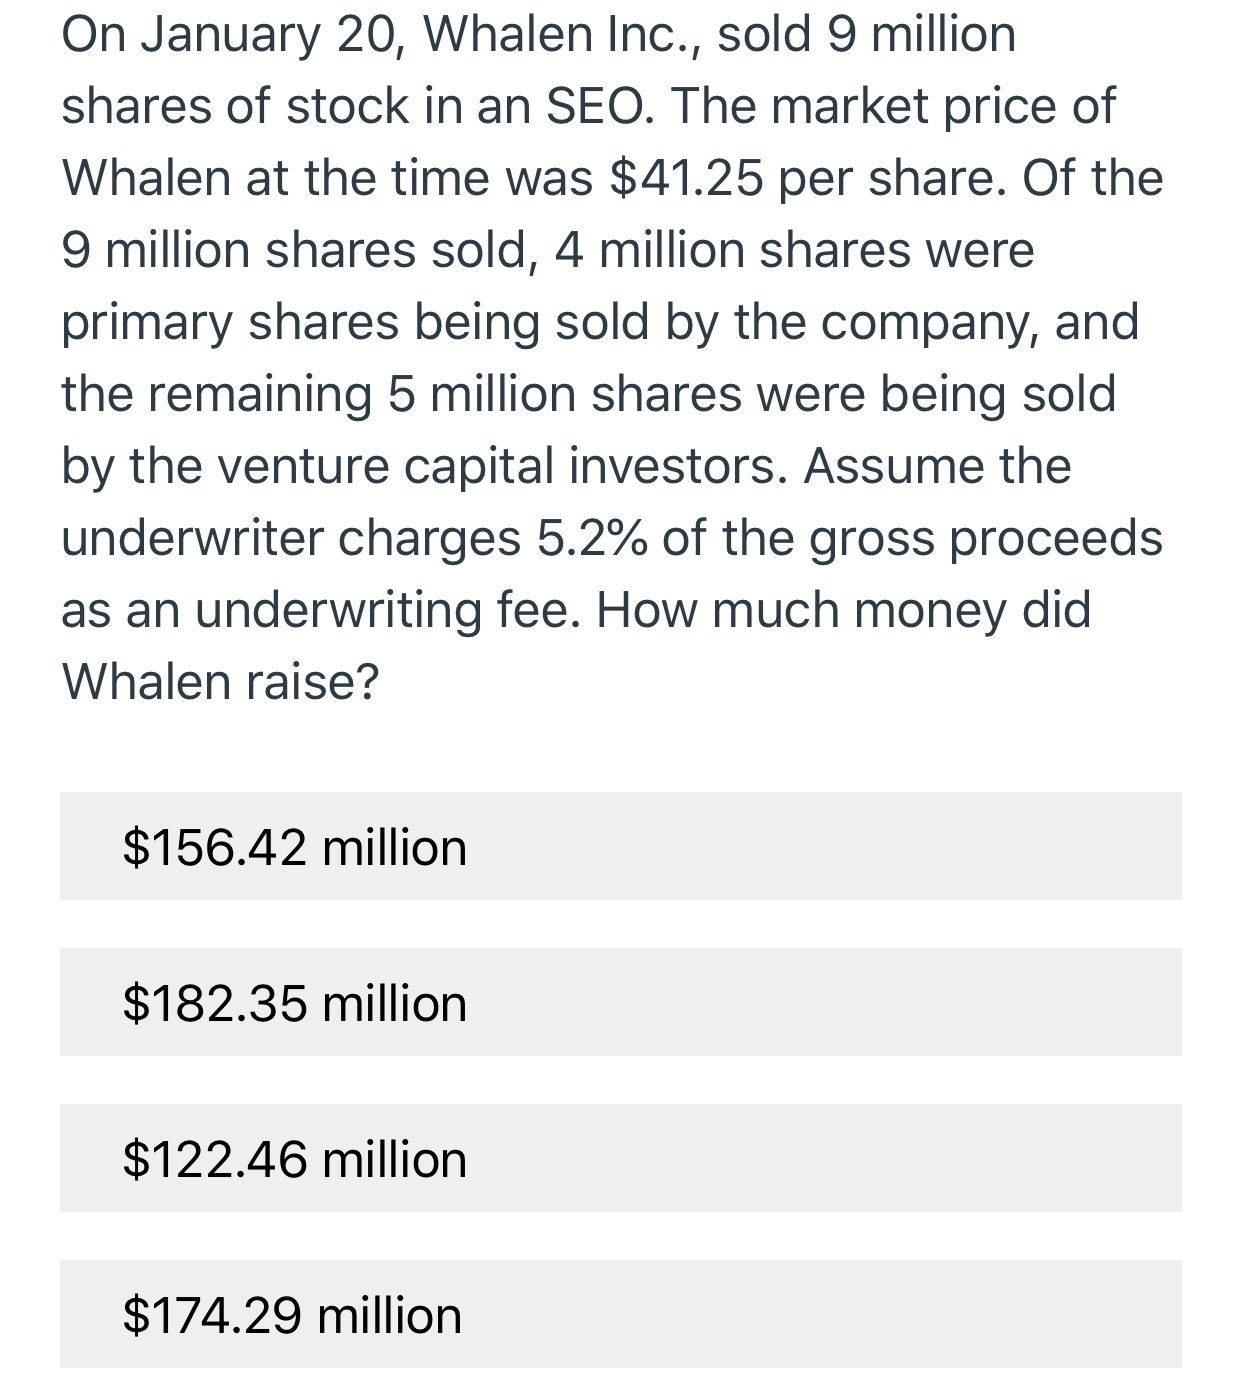 On January 20, Whalen Inc., sold 9 million shares of stock in an SEO. The market price of Whalen at the time was $41.25 per share. Of the 9 million shares sold, 4 million shares were primary shares being sold by the company, and the remaining 5 million shares were being sold by the venture capital investors. Assume the underwriter charges 5.2% of the gross proceeds as an underwriting fee. How much money did Whalen raise? $156.42 million $182.35 million $122.46 million $174.29 million